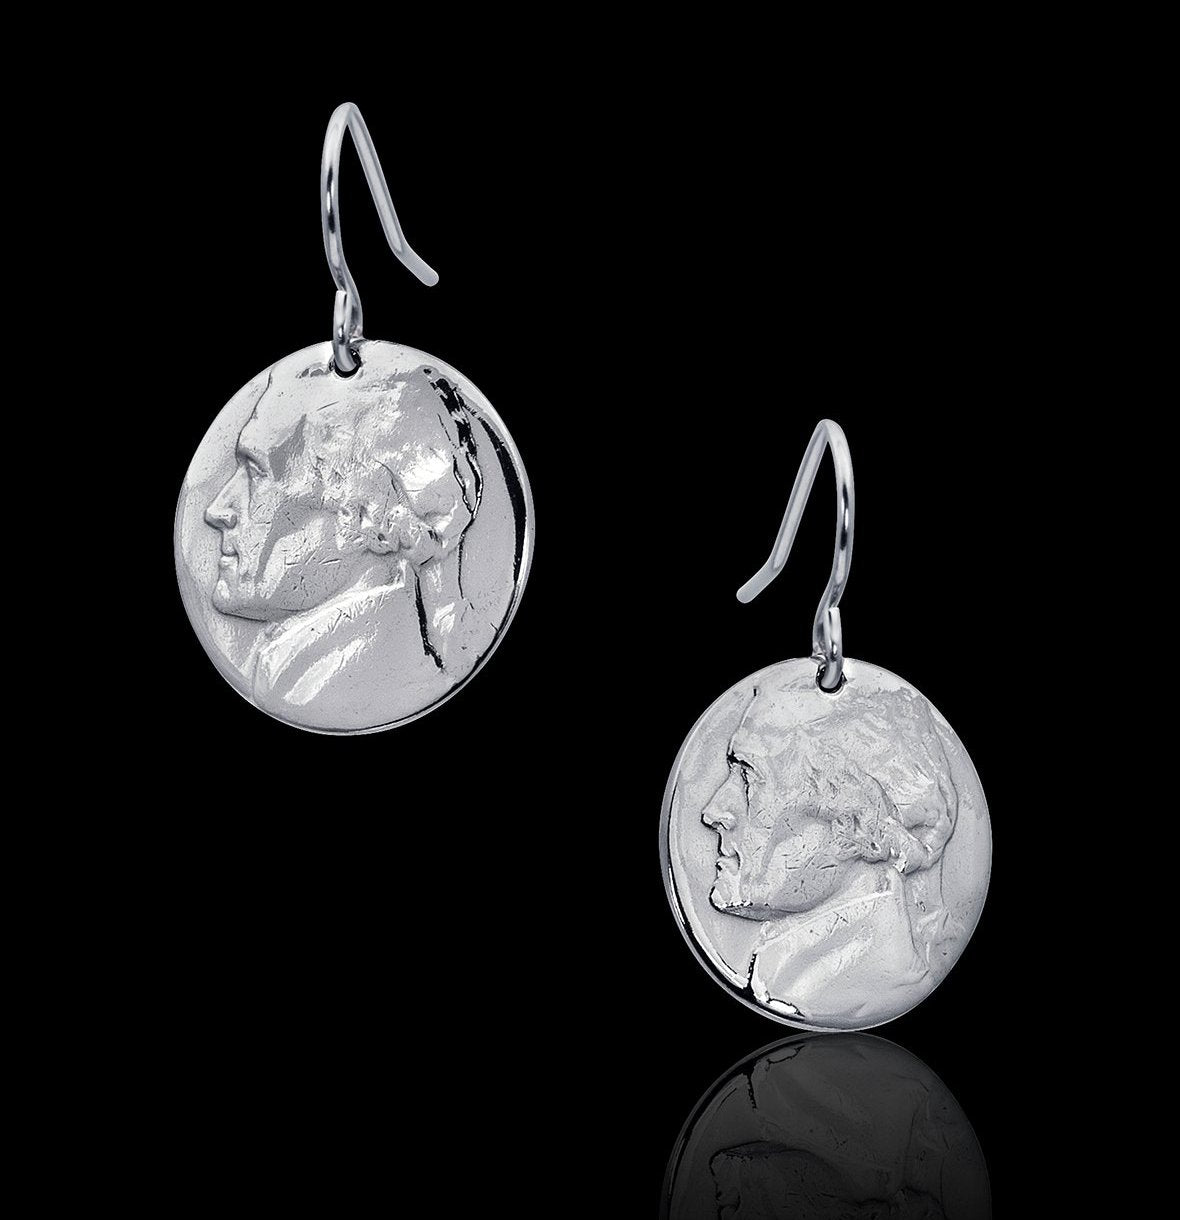 unique nickel coin earrings jewelry